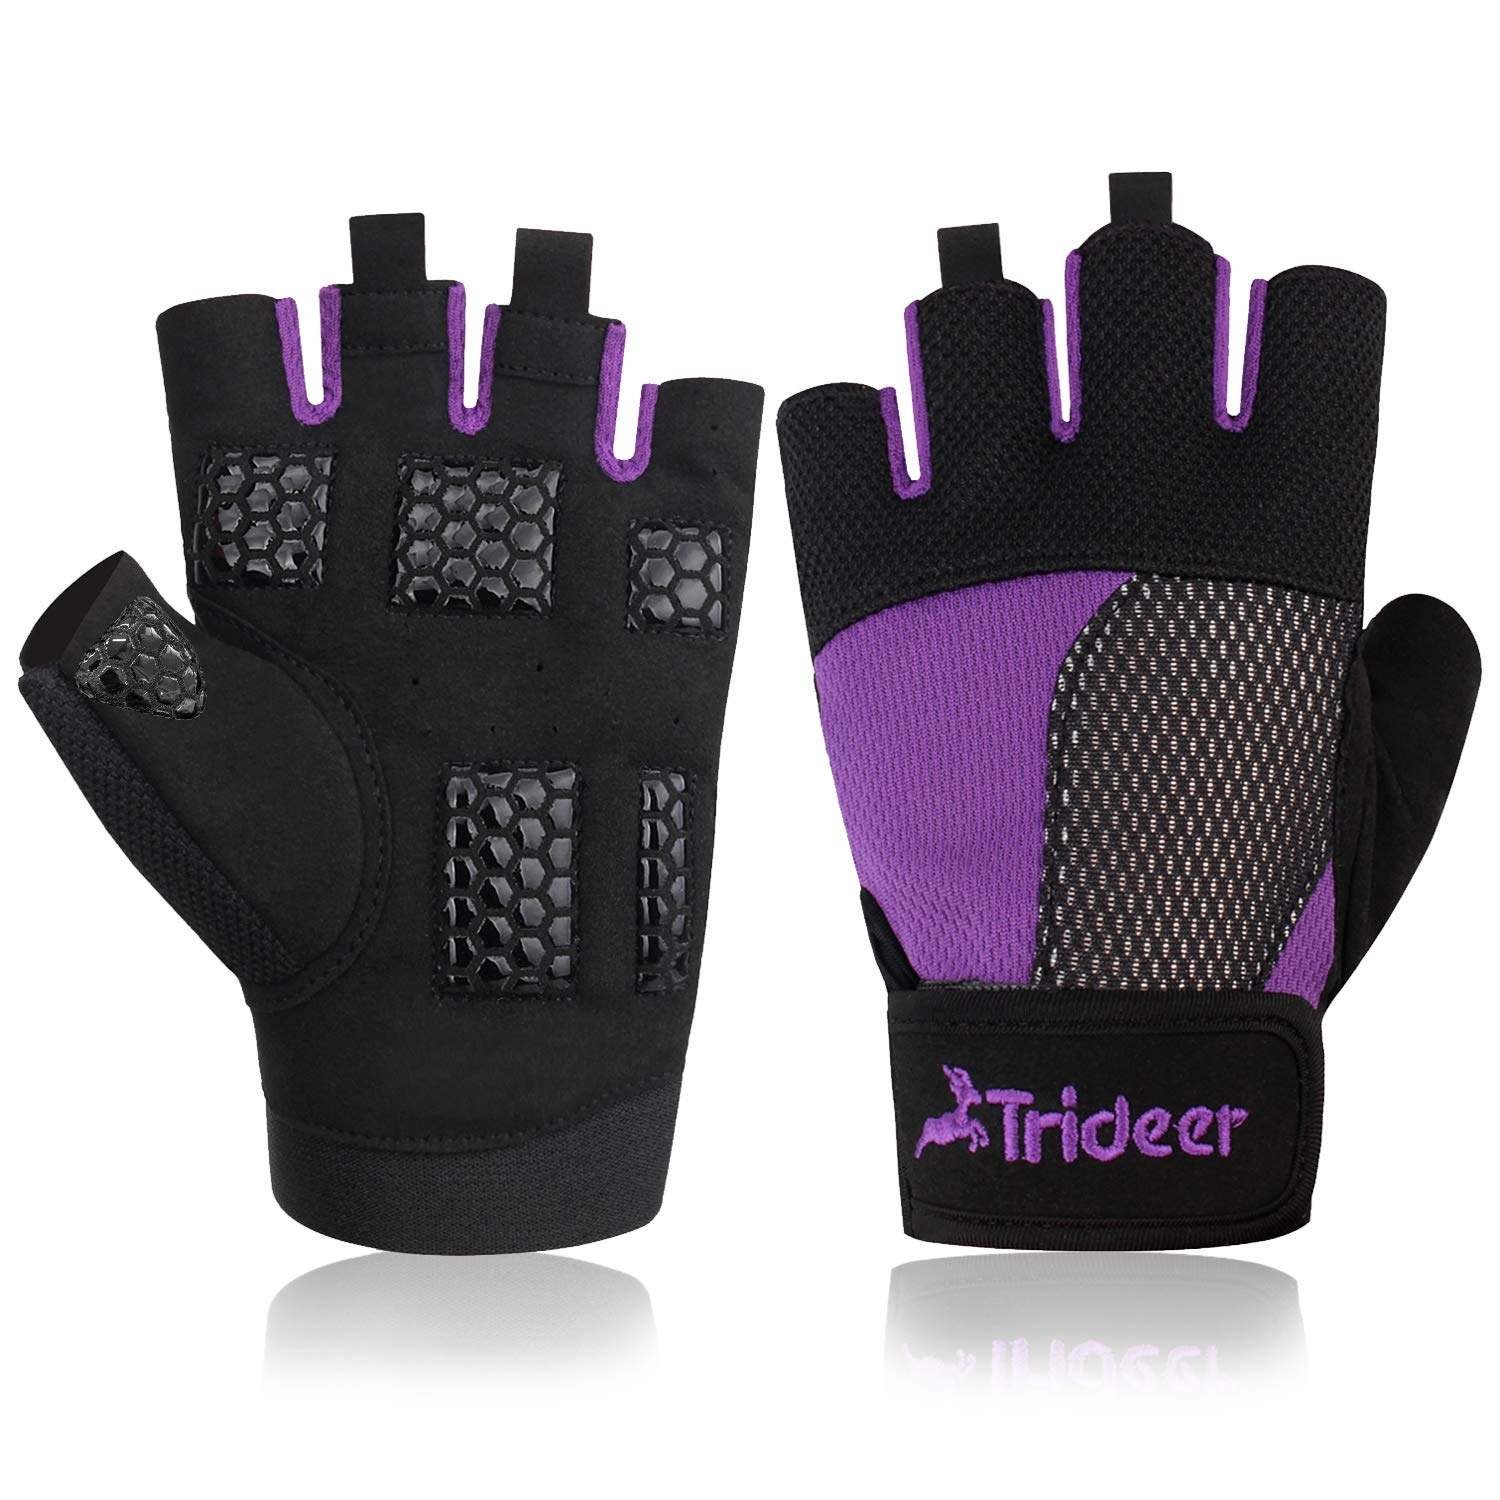 Trideer Women Weight Lifting Gloves, Breathable & Non-slip, Padded Gym Gloves For Powerlifting, Cross Training Purple M (Fits 7.1-7.5 Inches)